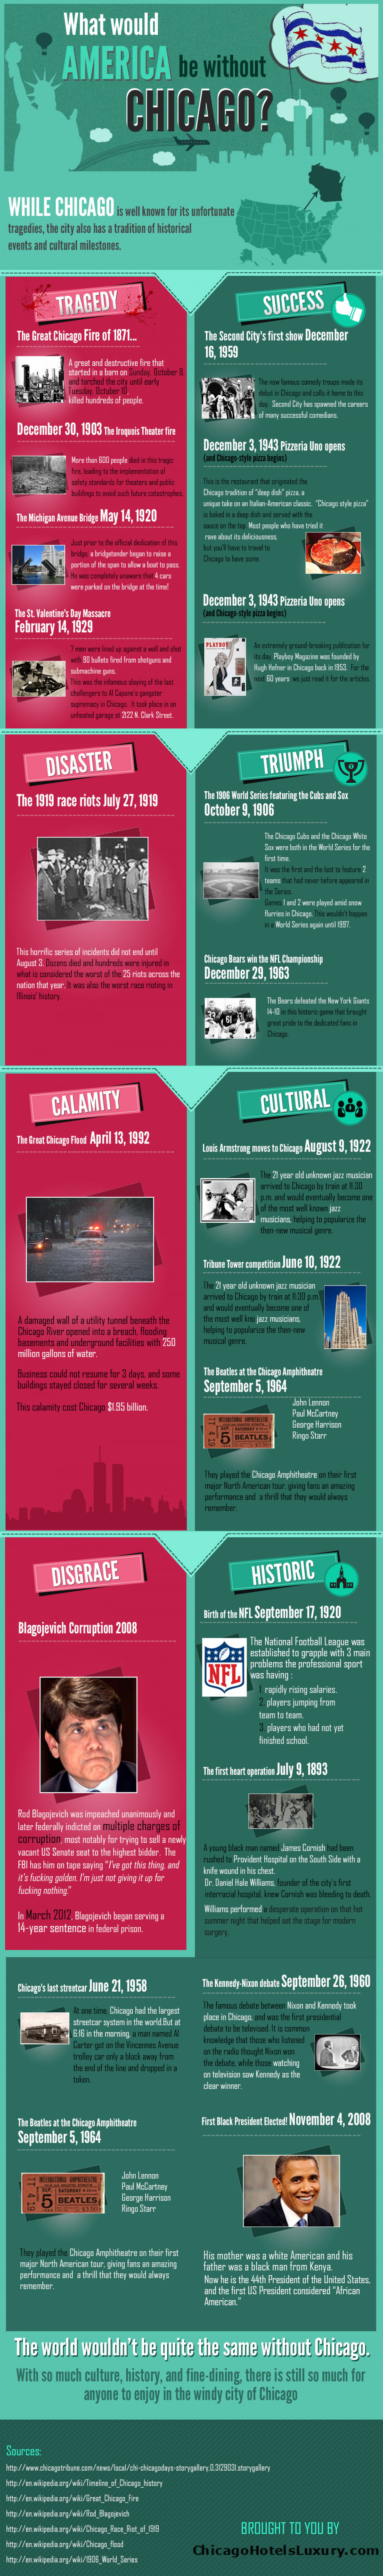 What would America be without Chicago? Infographic